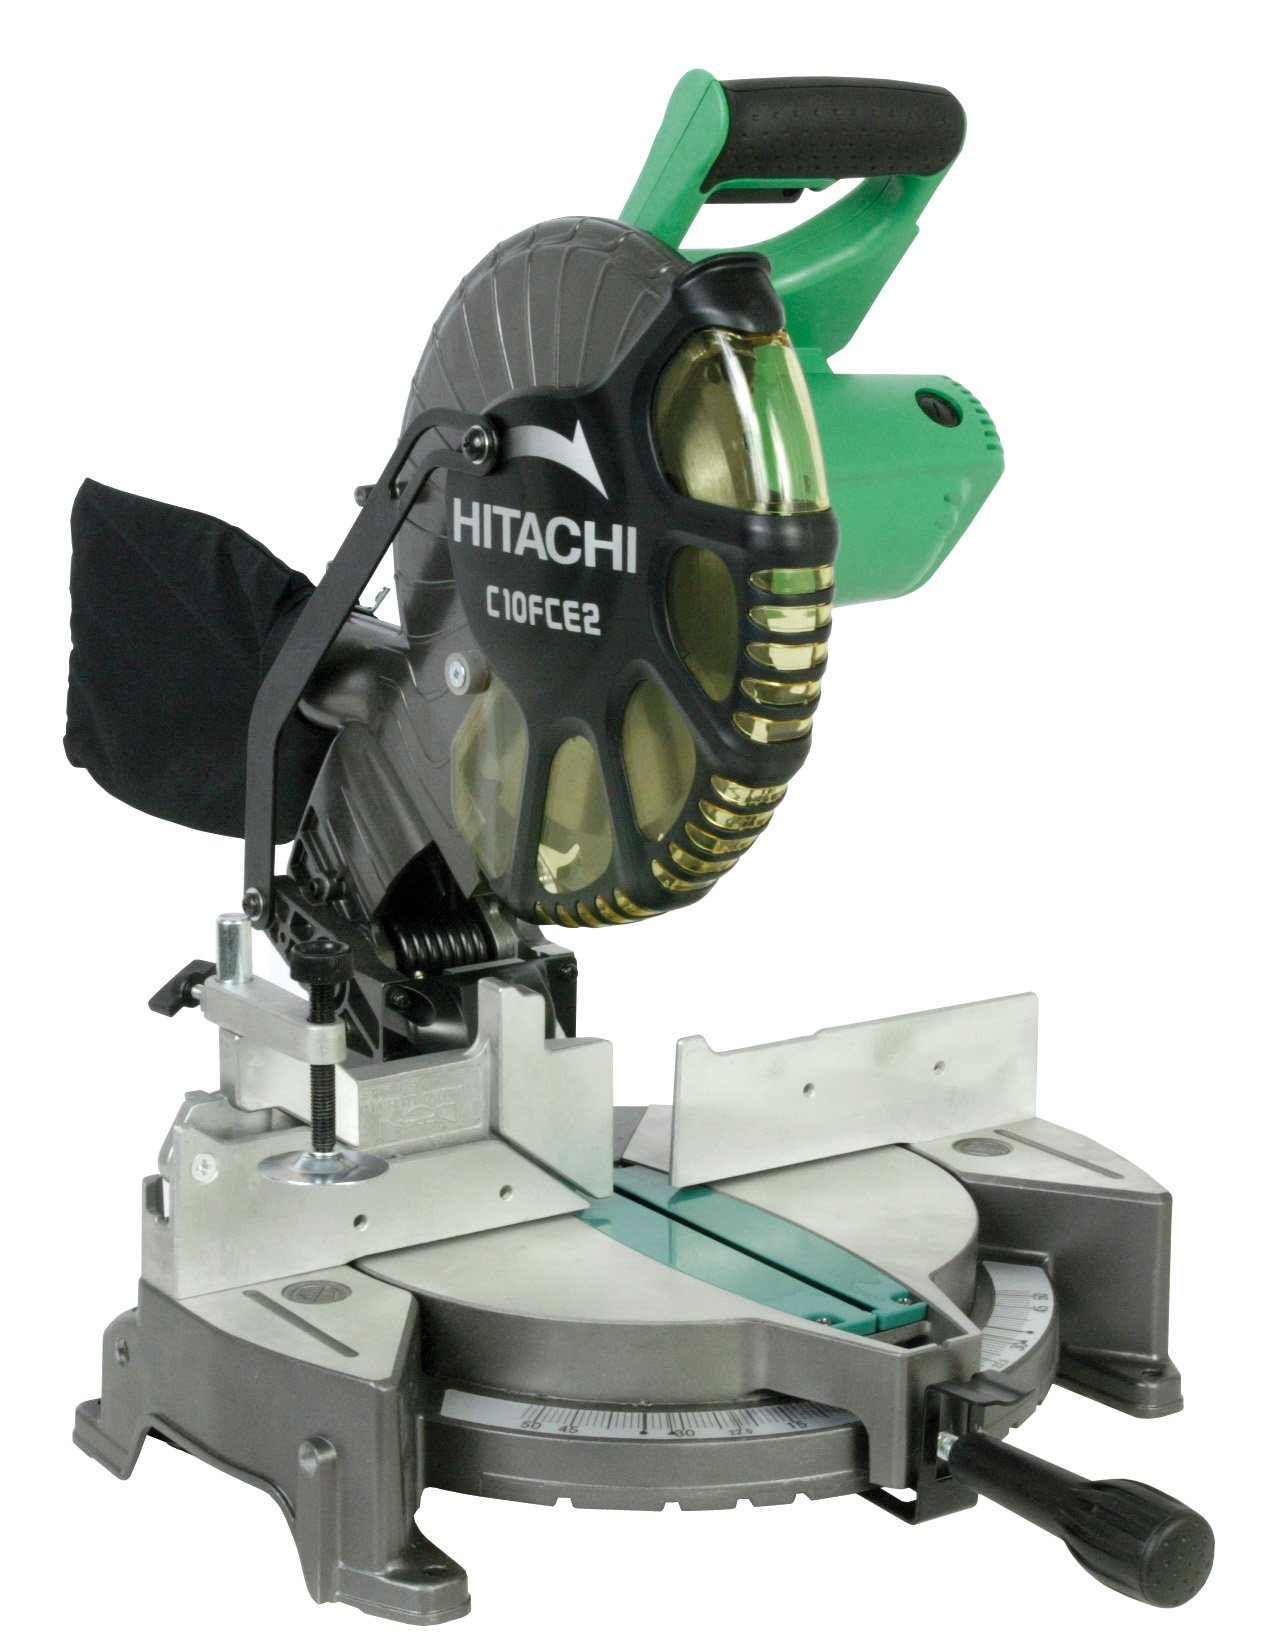 Hitachi C10FCE2 15-Amp 10-inch Single Bevel Compound Miter Saw by Hitachi